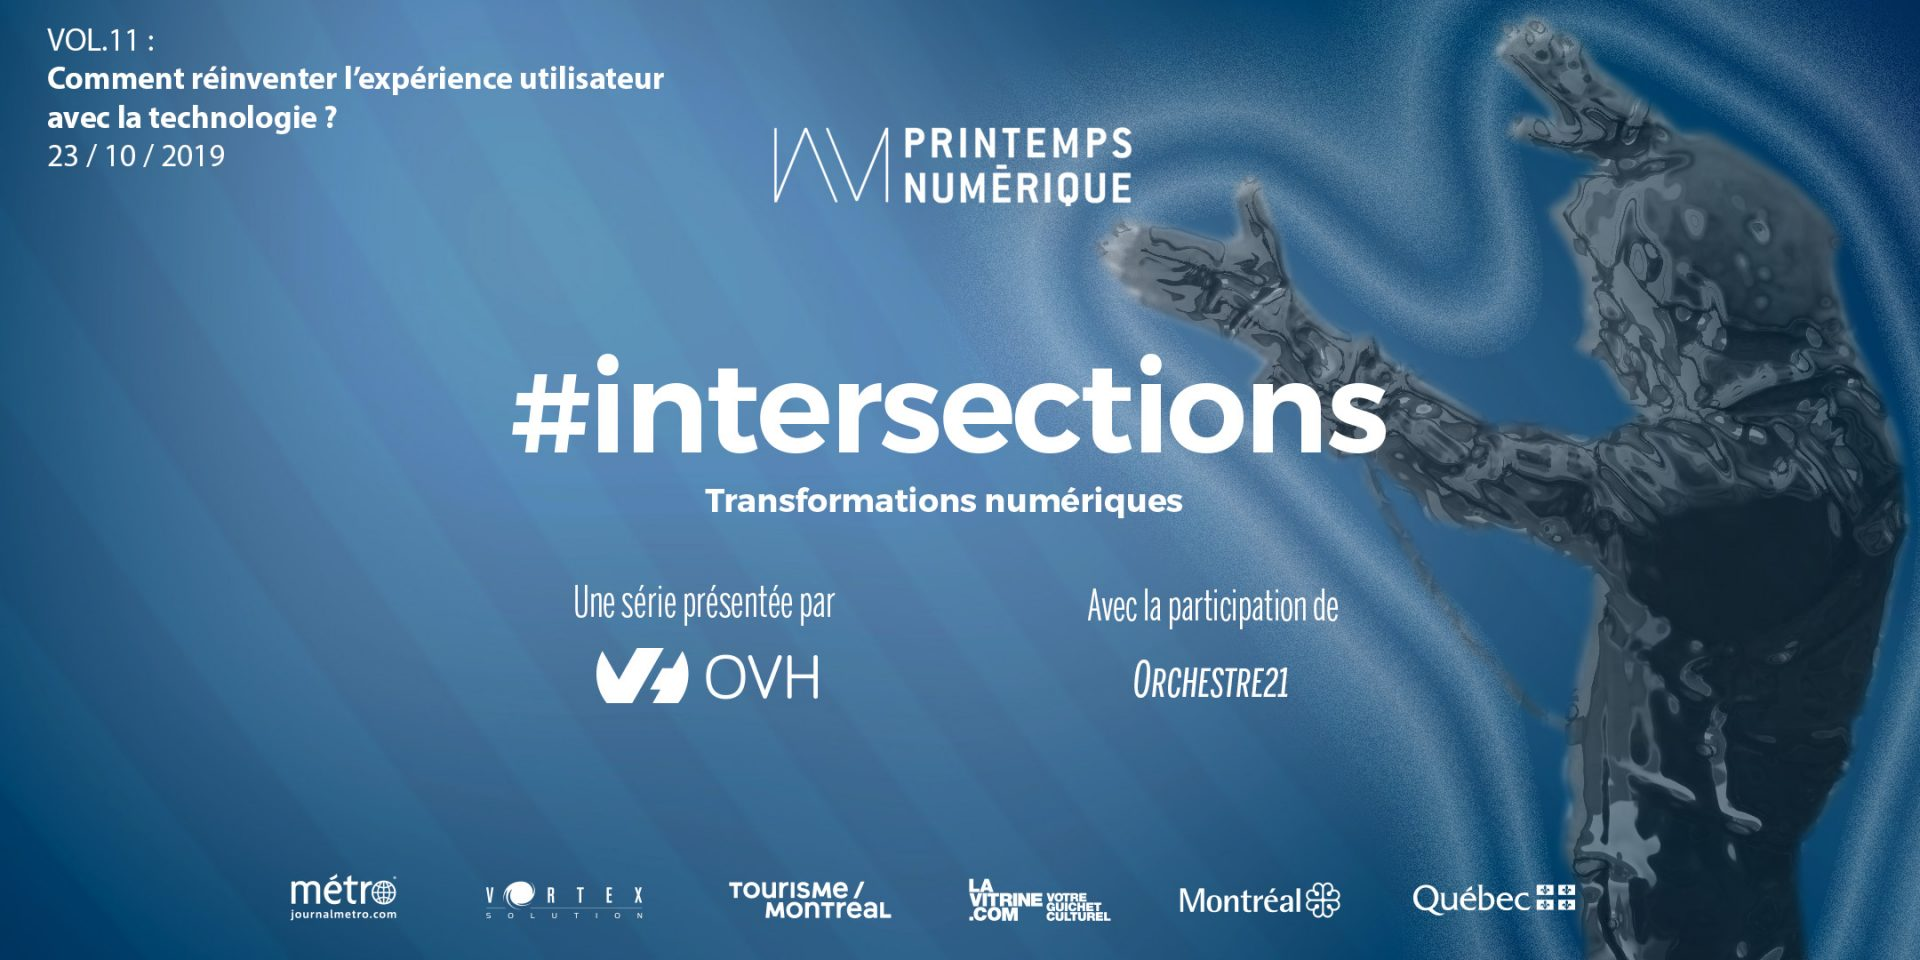 #intersections VOL.11: How to reinvent the user experience with technology?